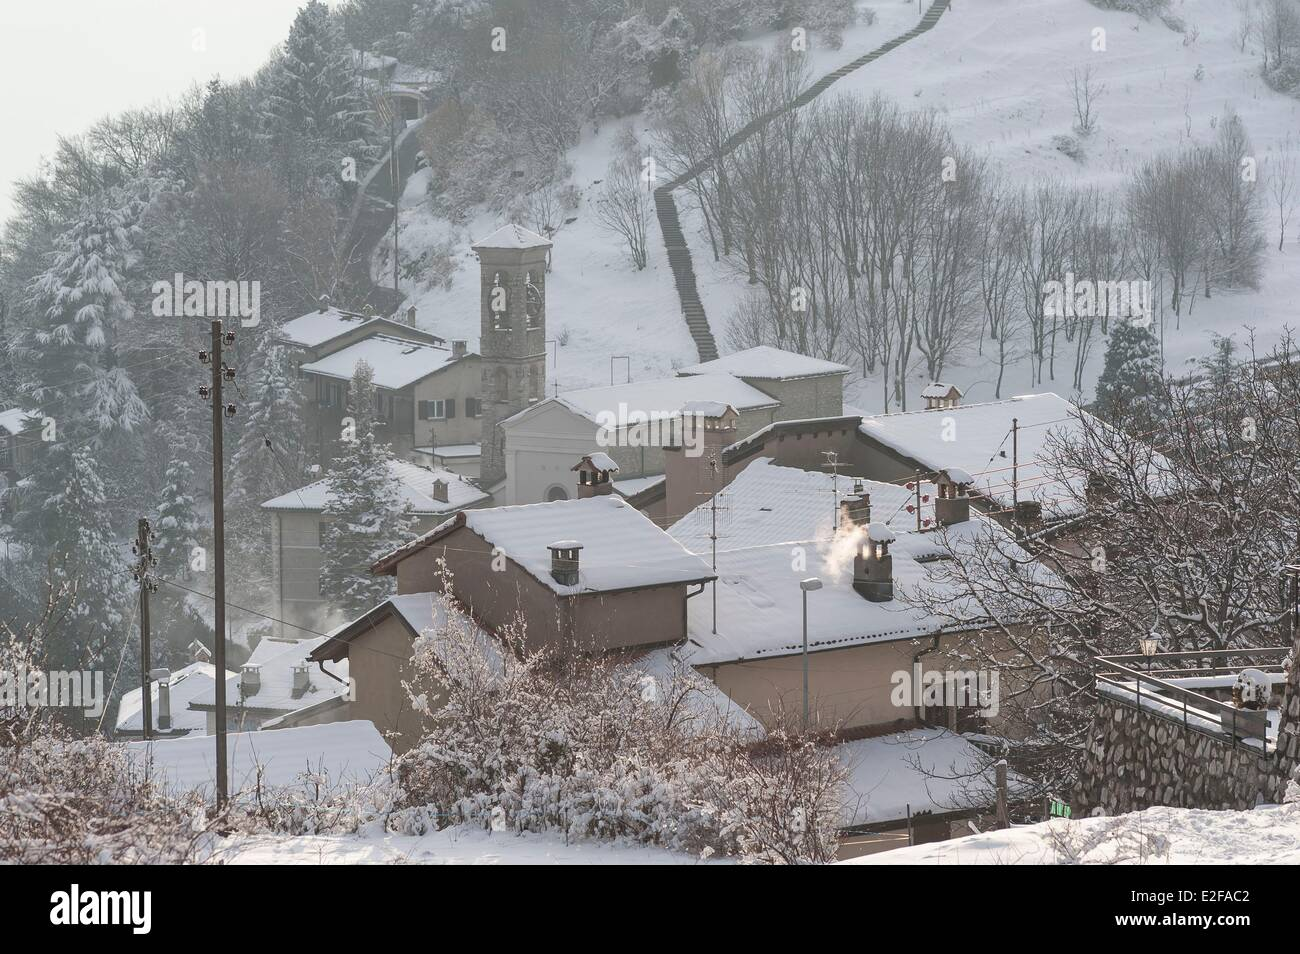 Switzerland, Ticino, Lugano, Bre vilage after a snowfall in February Stock Photo